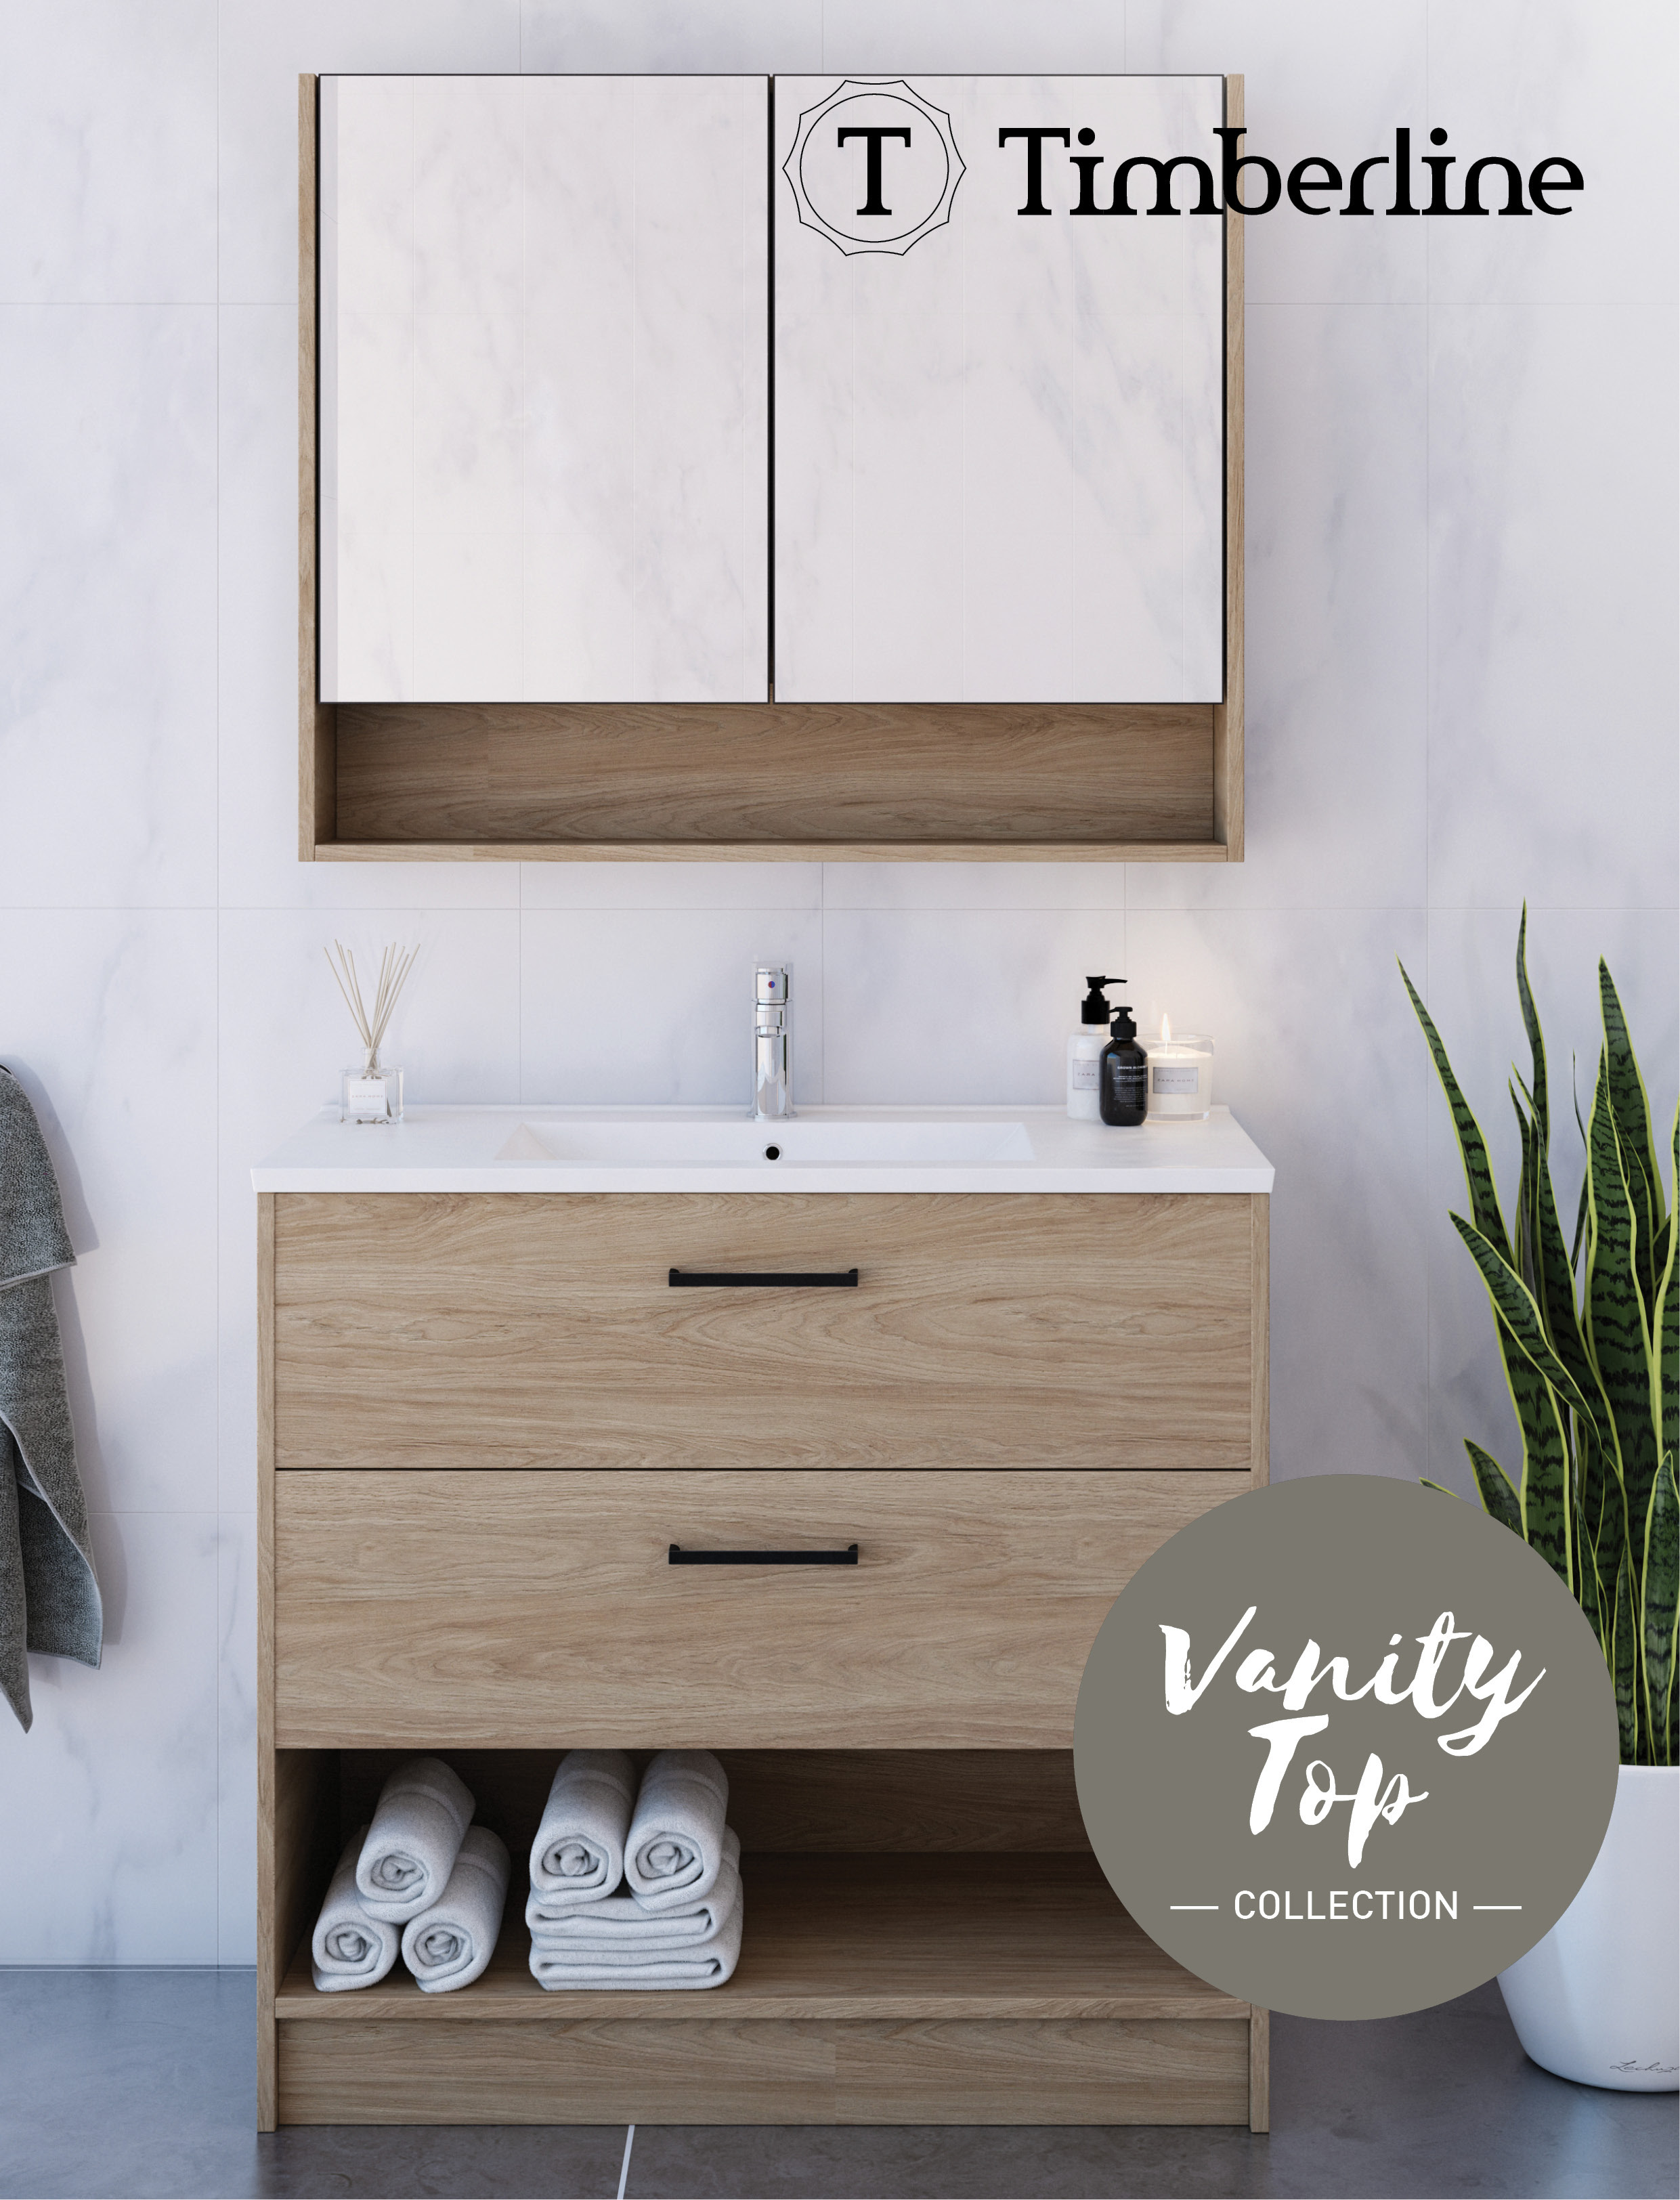 Vanity Top Collection Image